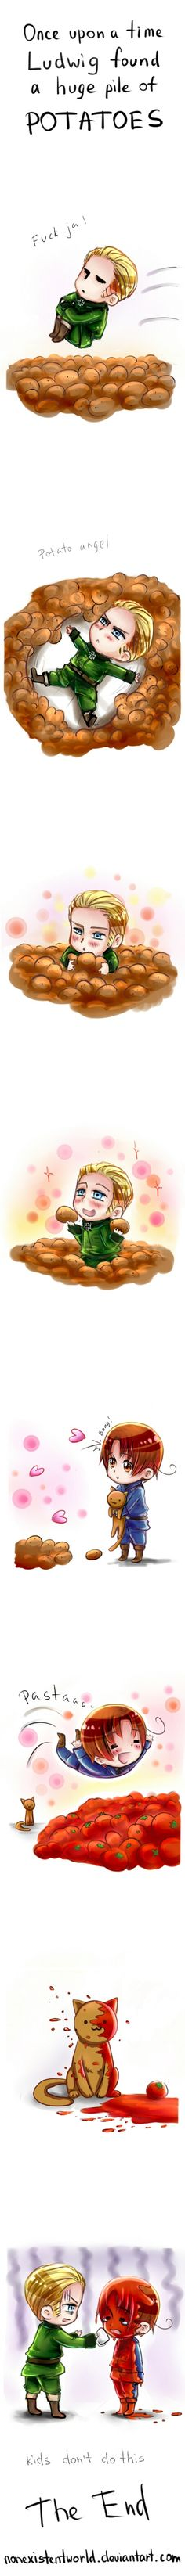 APH : Feli goes to heaven by NonexistentWorld.deviantart.com on @deviantART funny and cute X3